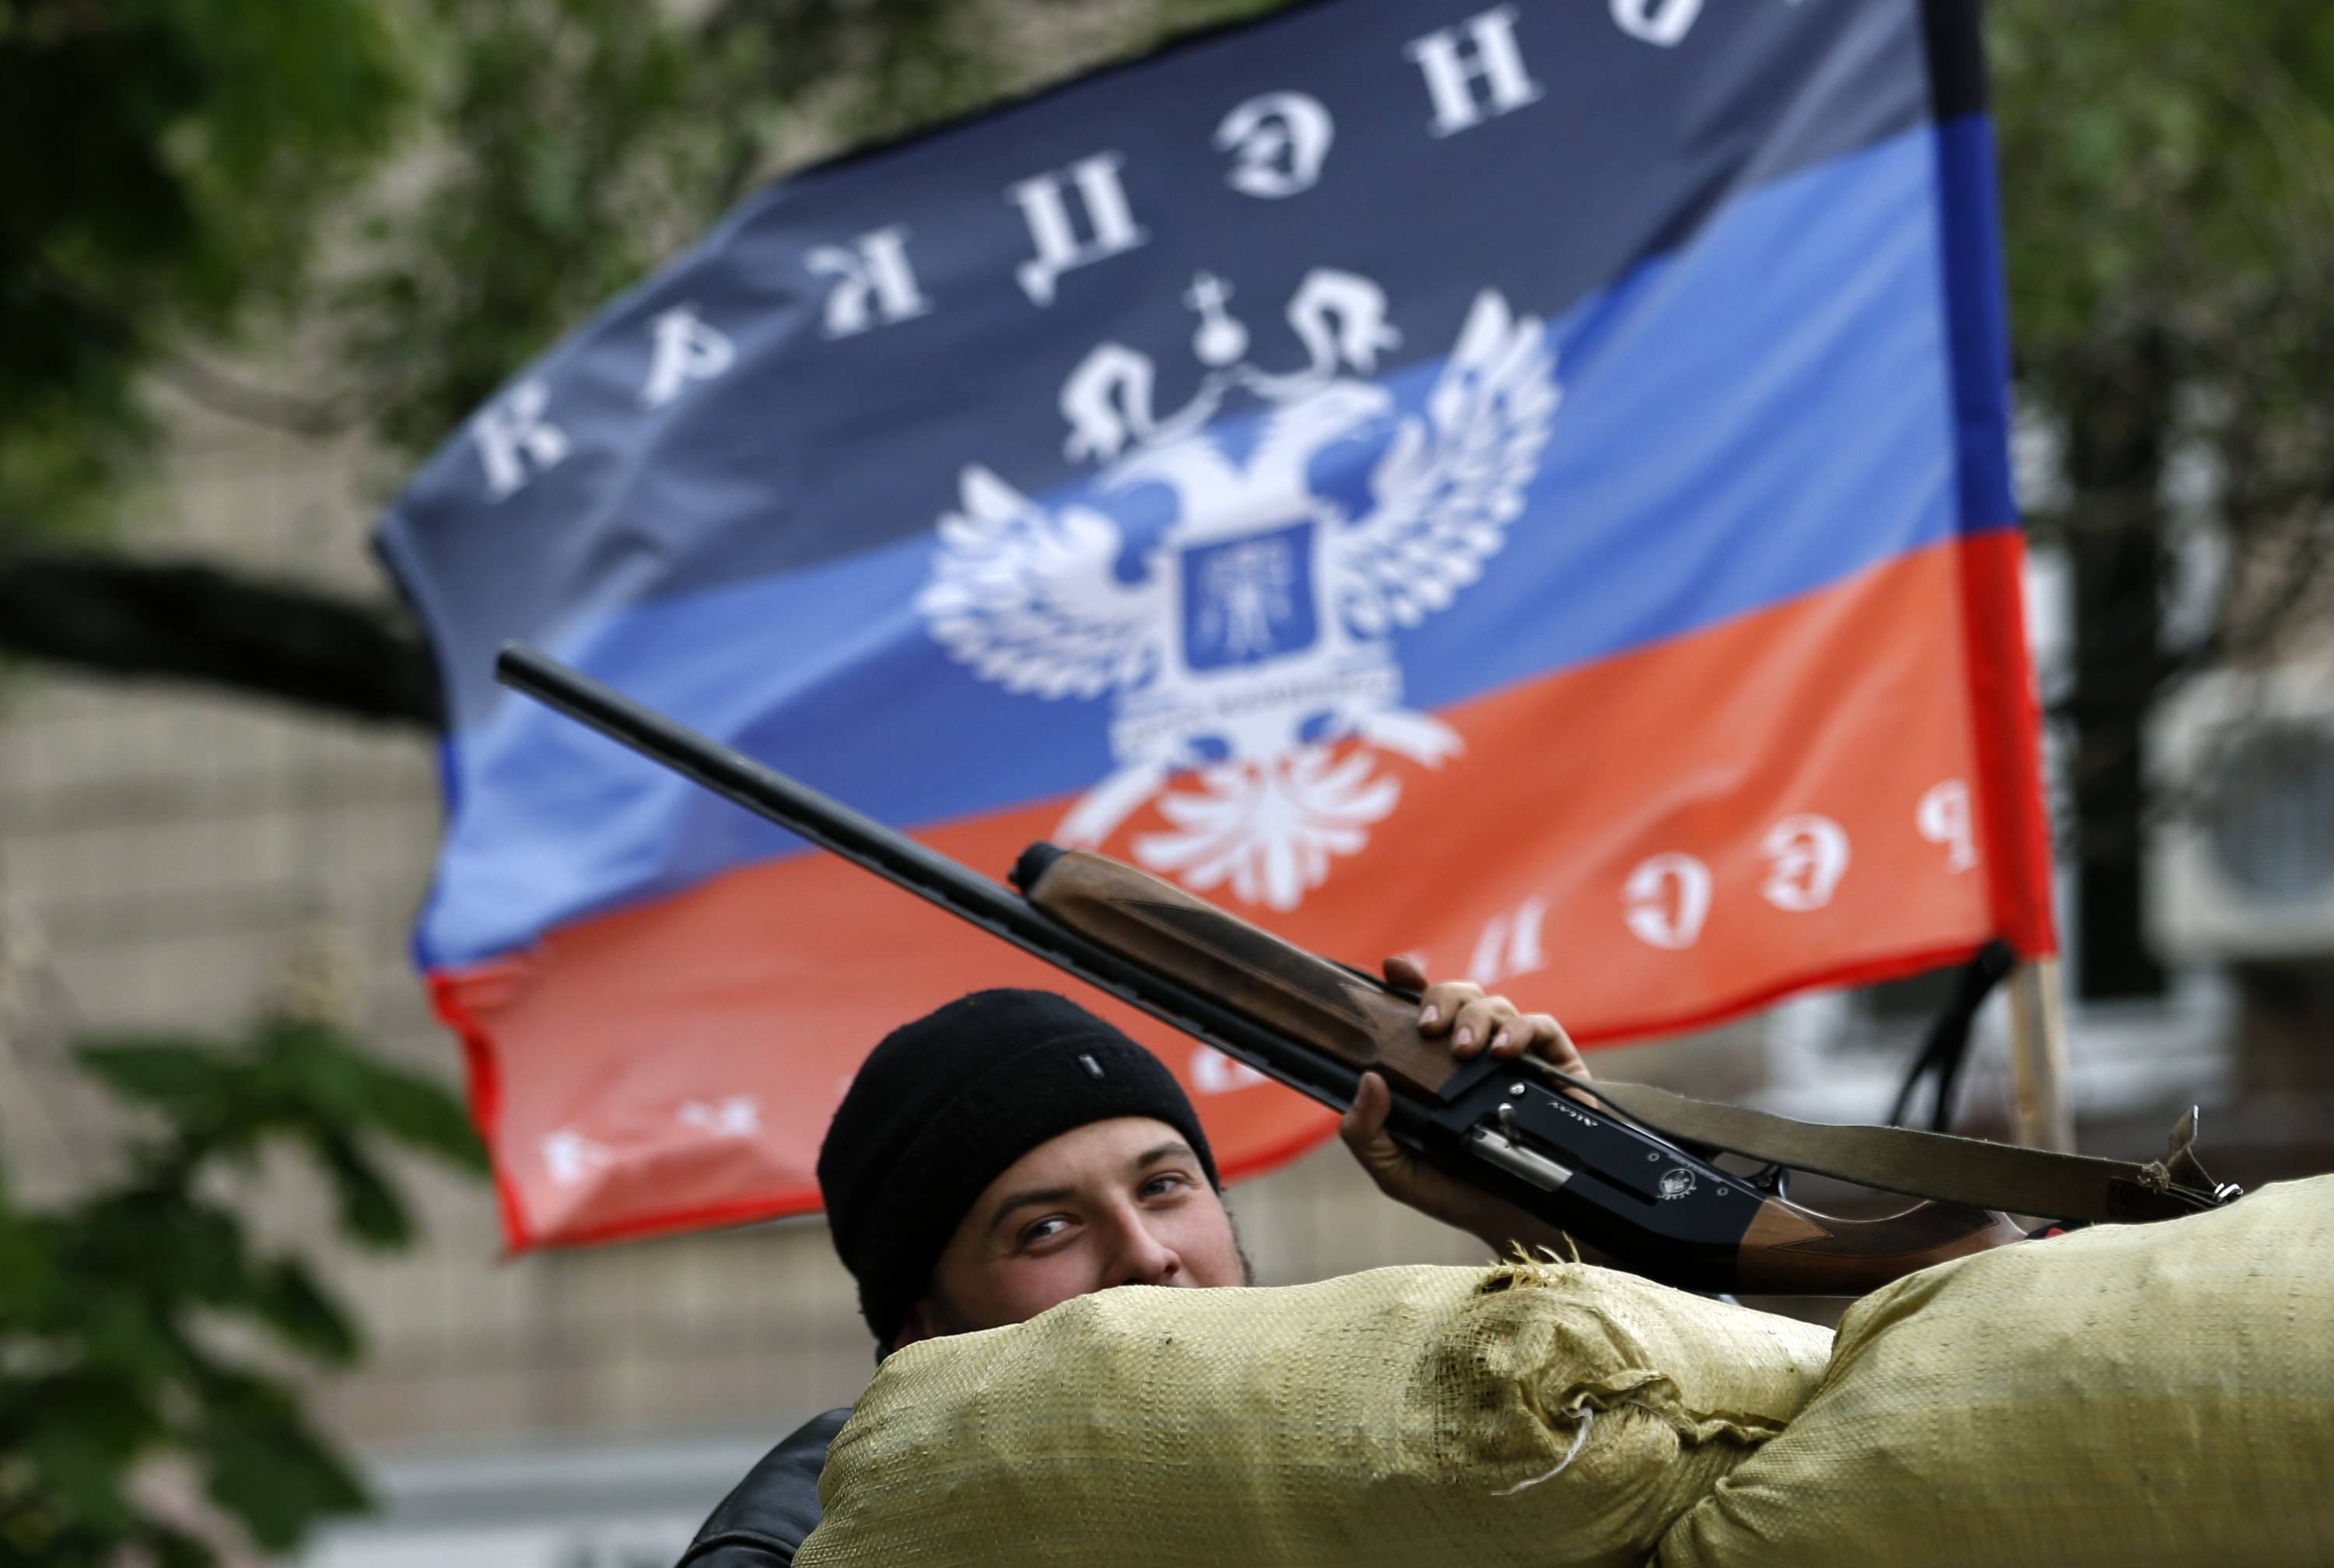 A pro-Russian gunman stands behind the barricades and shows his hunting rifle in front of the flag of the self-proclaimed Donetsk People's Republic, in the center of Slovyansk, eastern Ukraine, Thursday. A strong majority of Ukrainians want their country to remain a single, unified state and this is true even in the largely Russian-speaking east where a pro-Russia insurgency has been fighting for autonomy, a poll released Thursday shows.